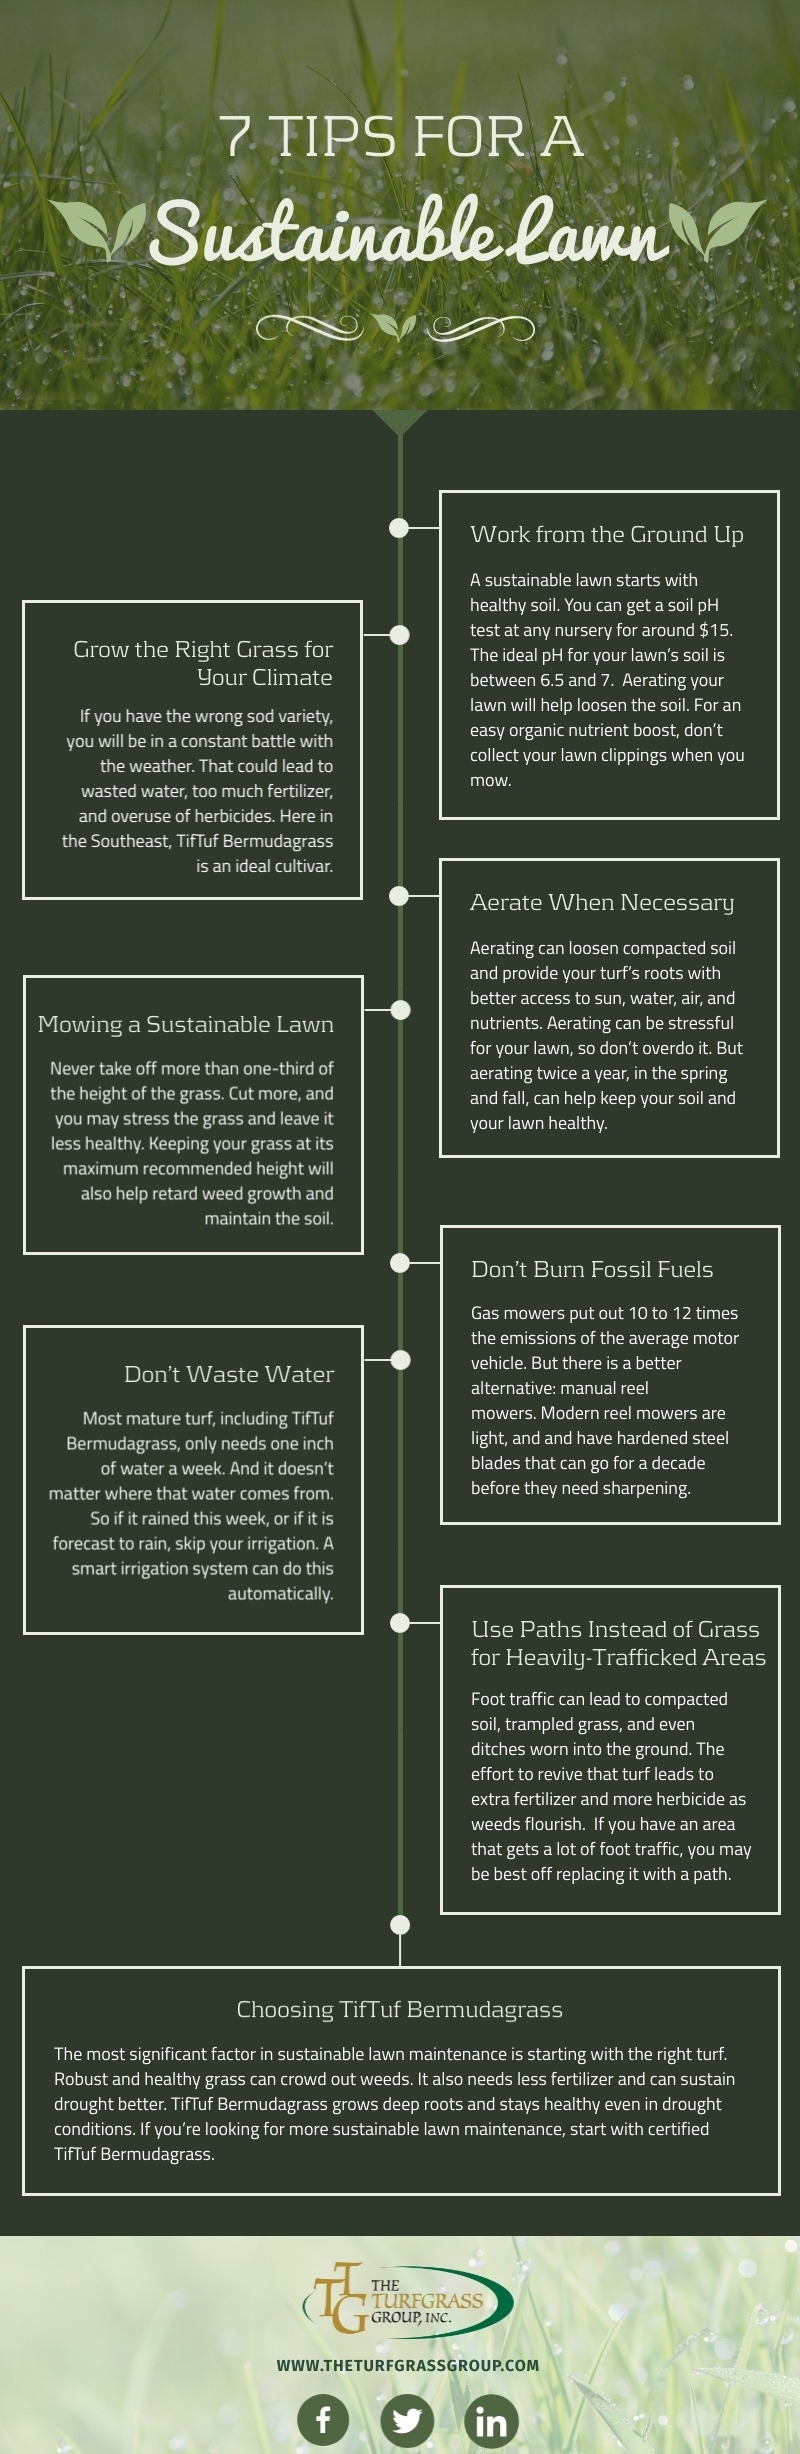 7 Tips for a Sustainable Lawn [infographic]